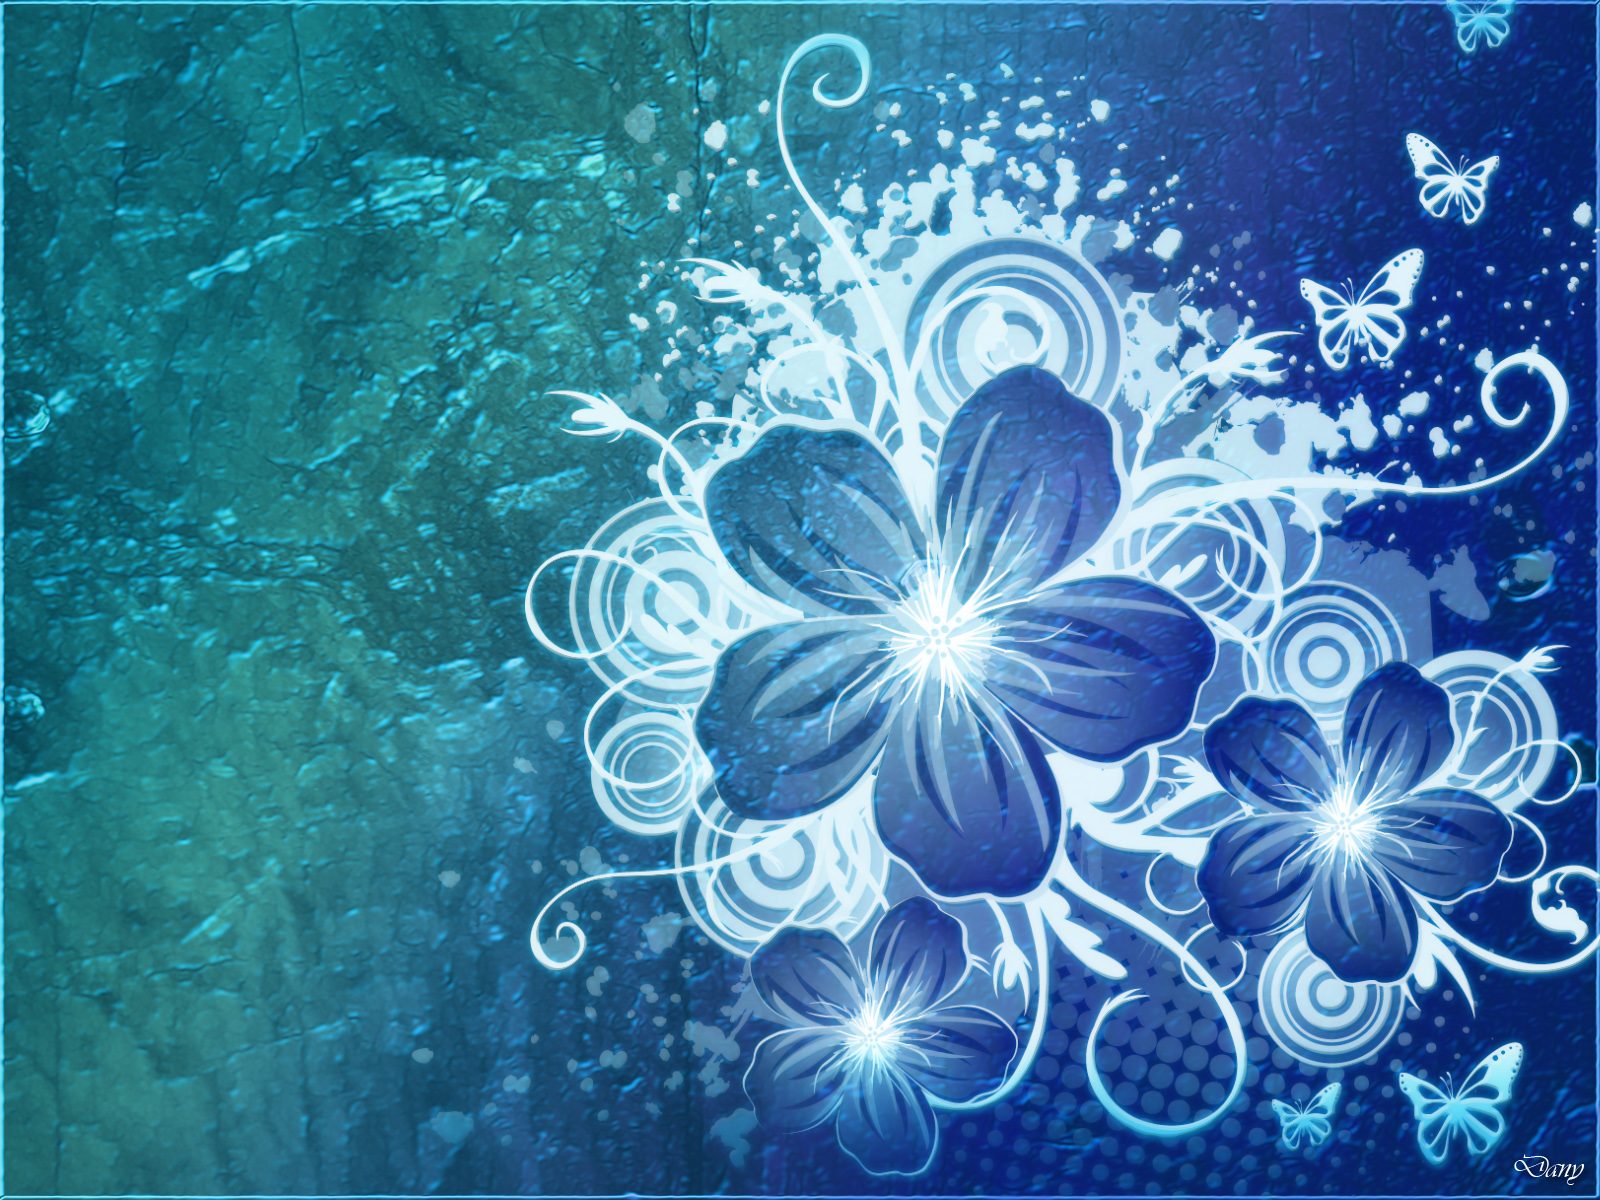 Cynthia selahblue cynti19 blue flower wallpaper